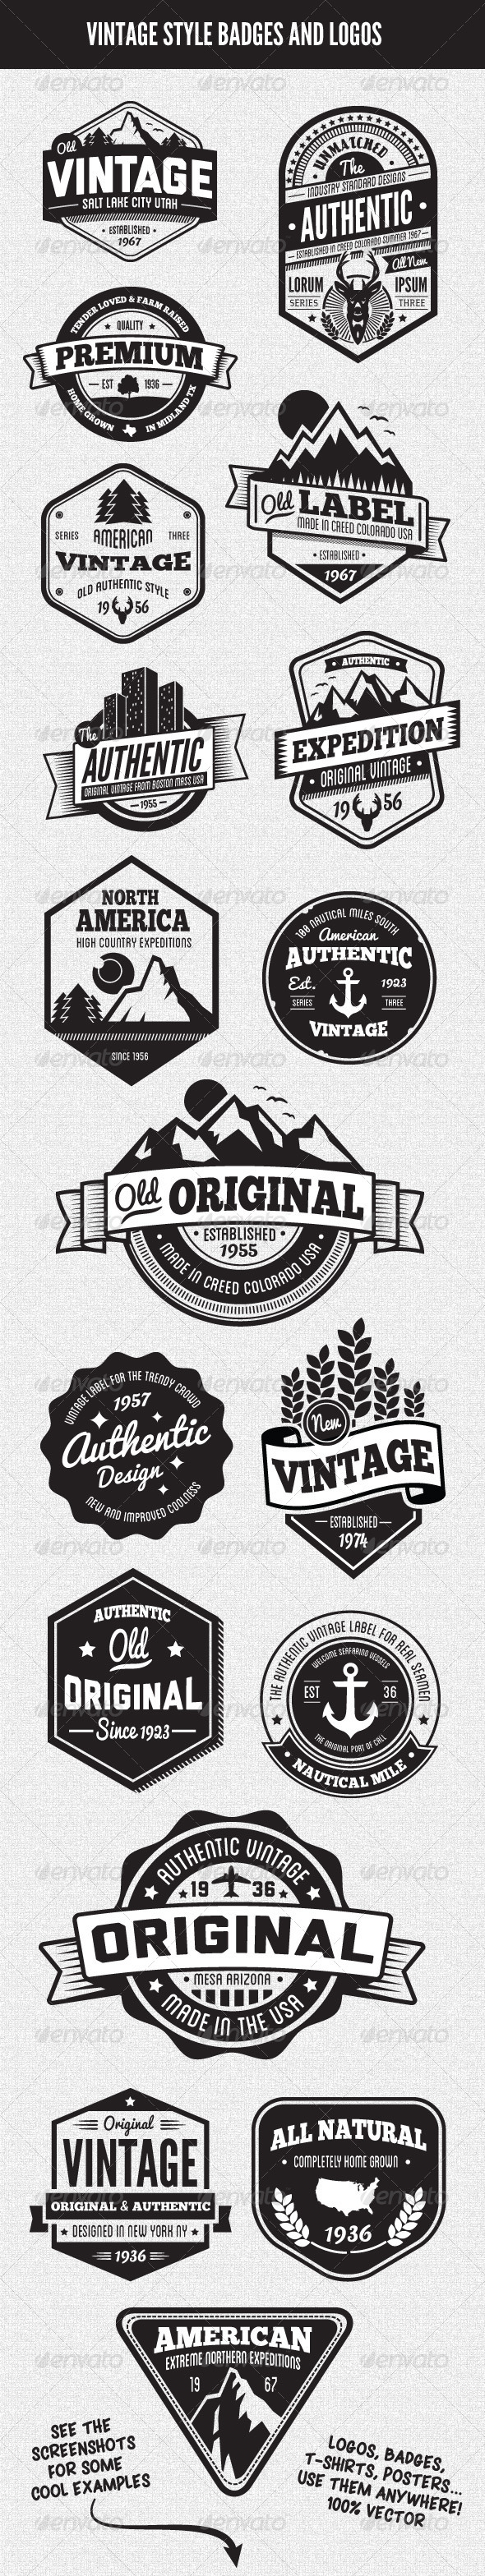 GraphicRiver Vintage Style Badges and Logos Vol 3 5495863